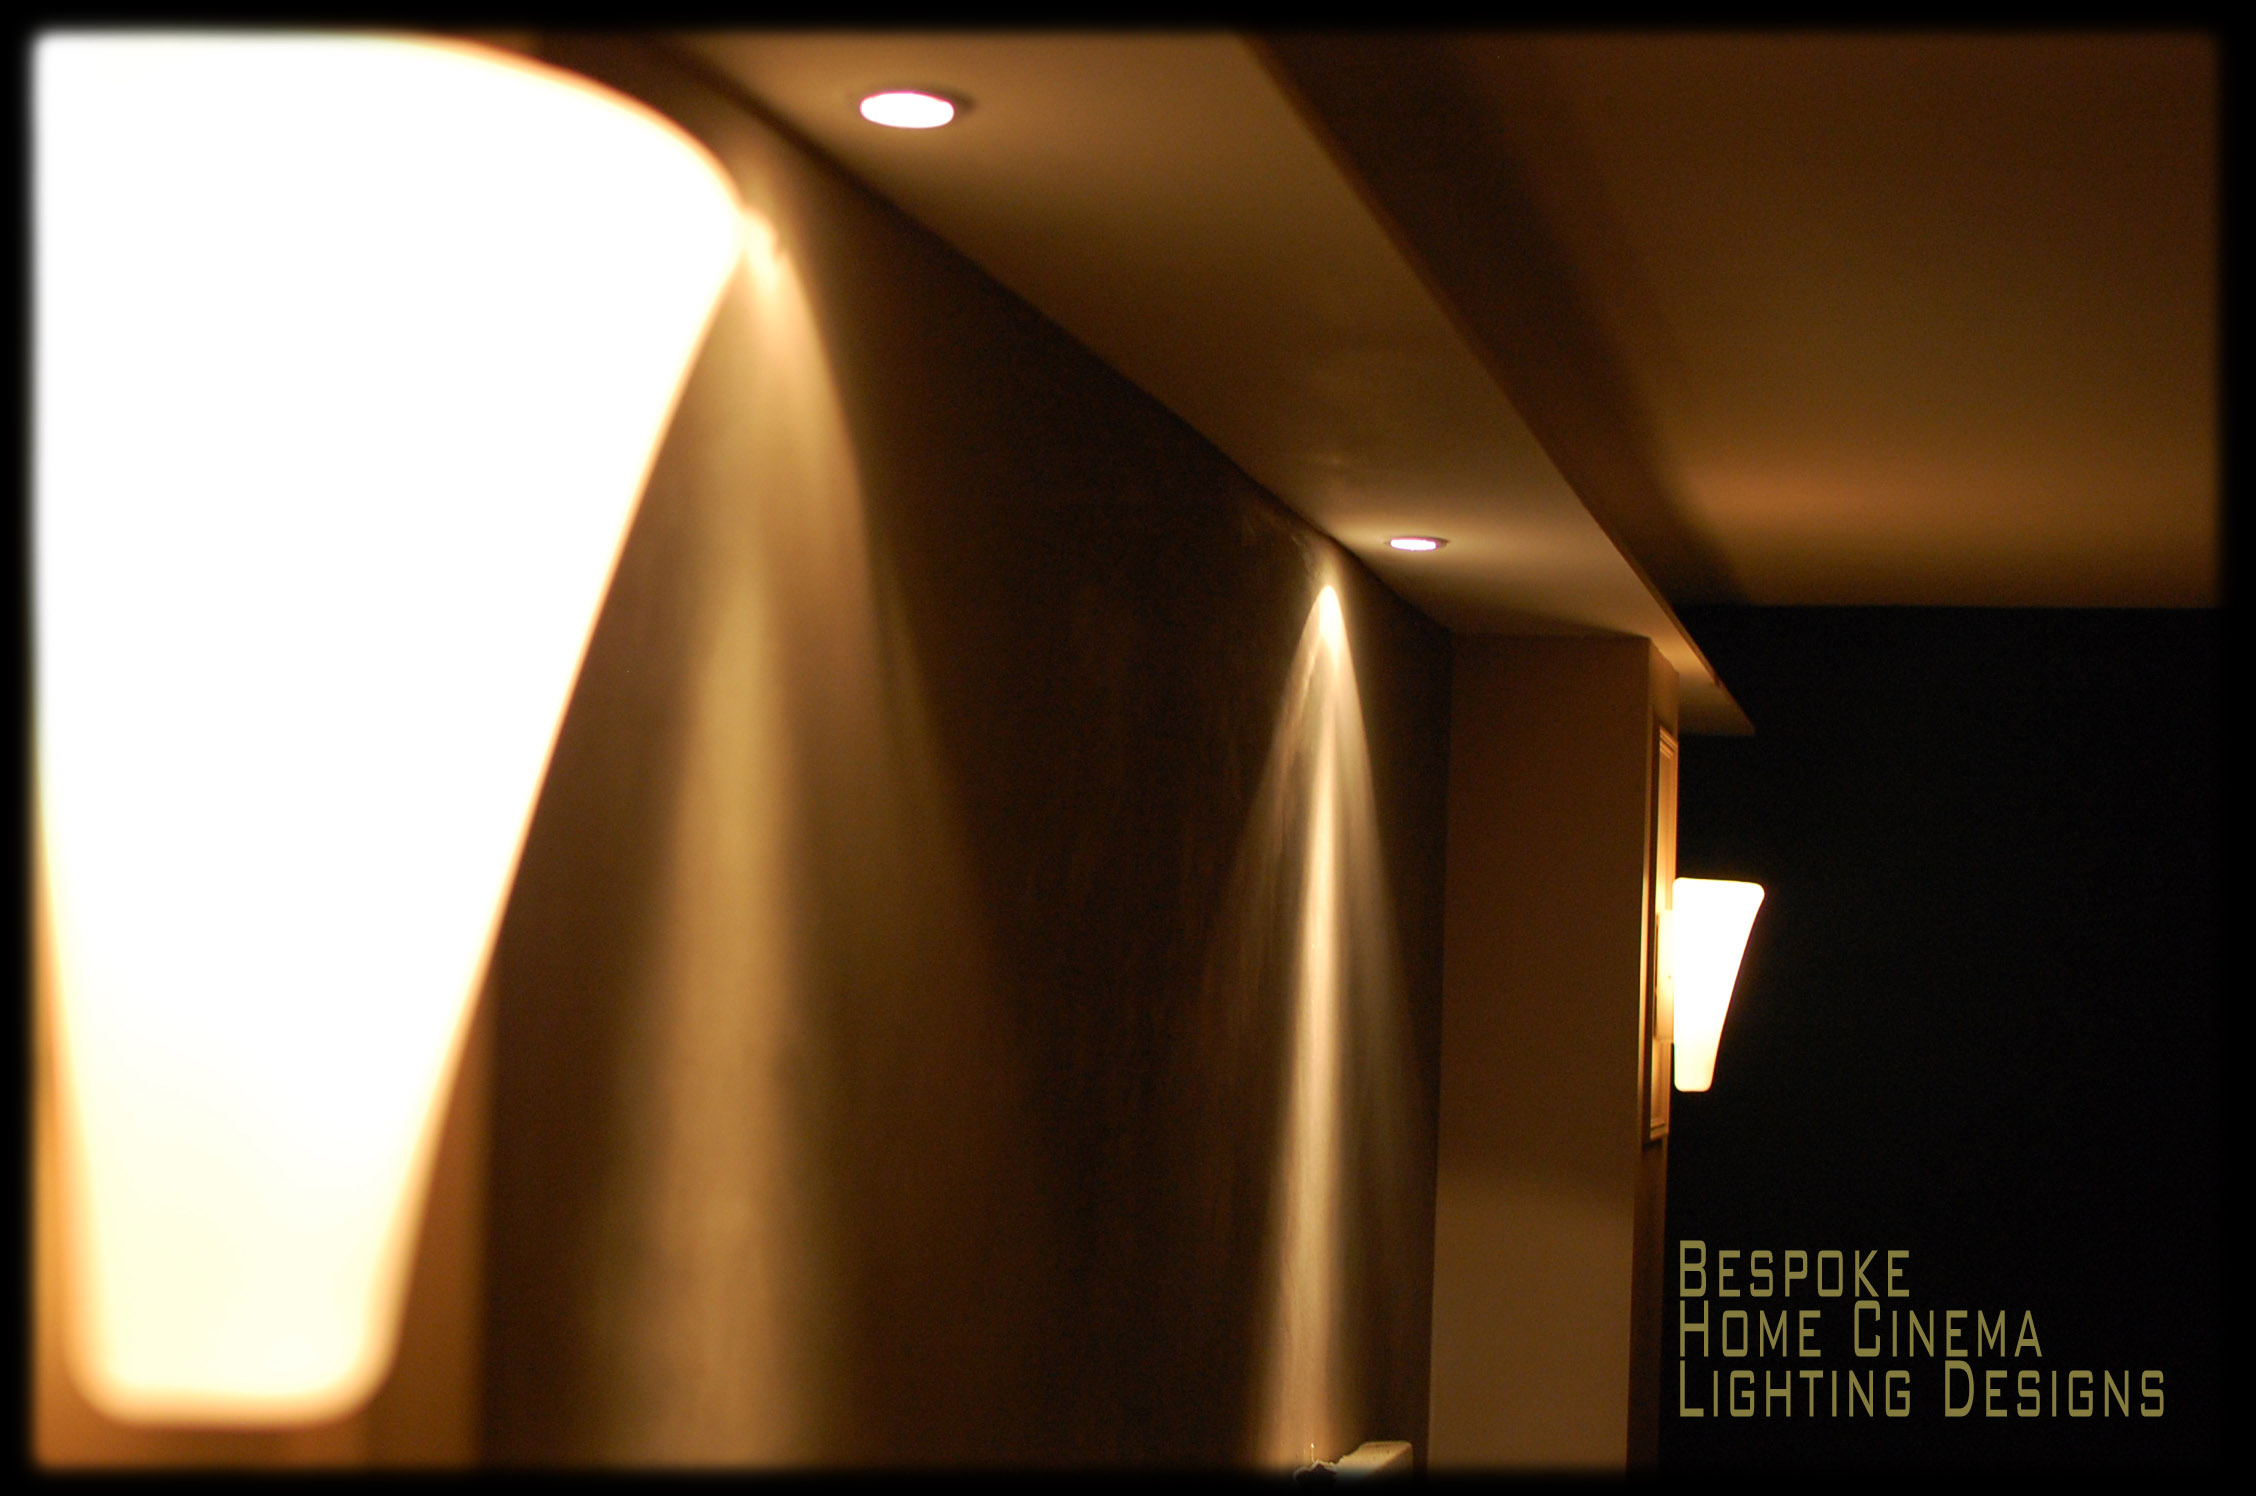 epic home cinema design and install we also specialize in home cinema seating home cinema design acoustic innovations entry level to high end projectors and the ultimate surround sound